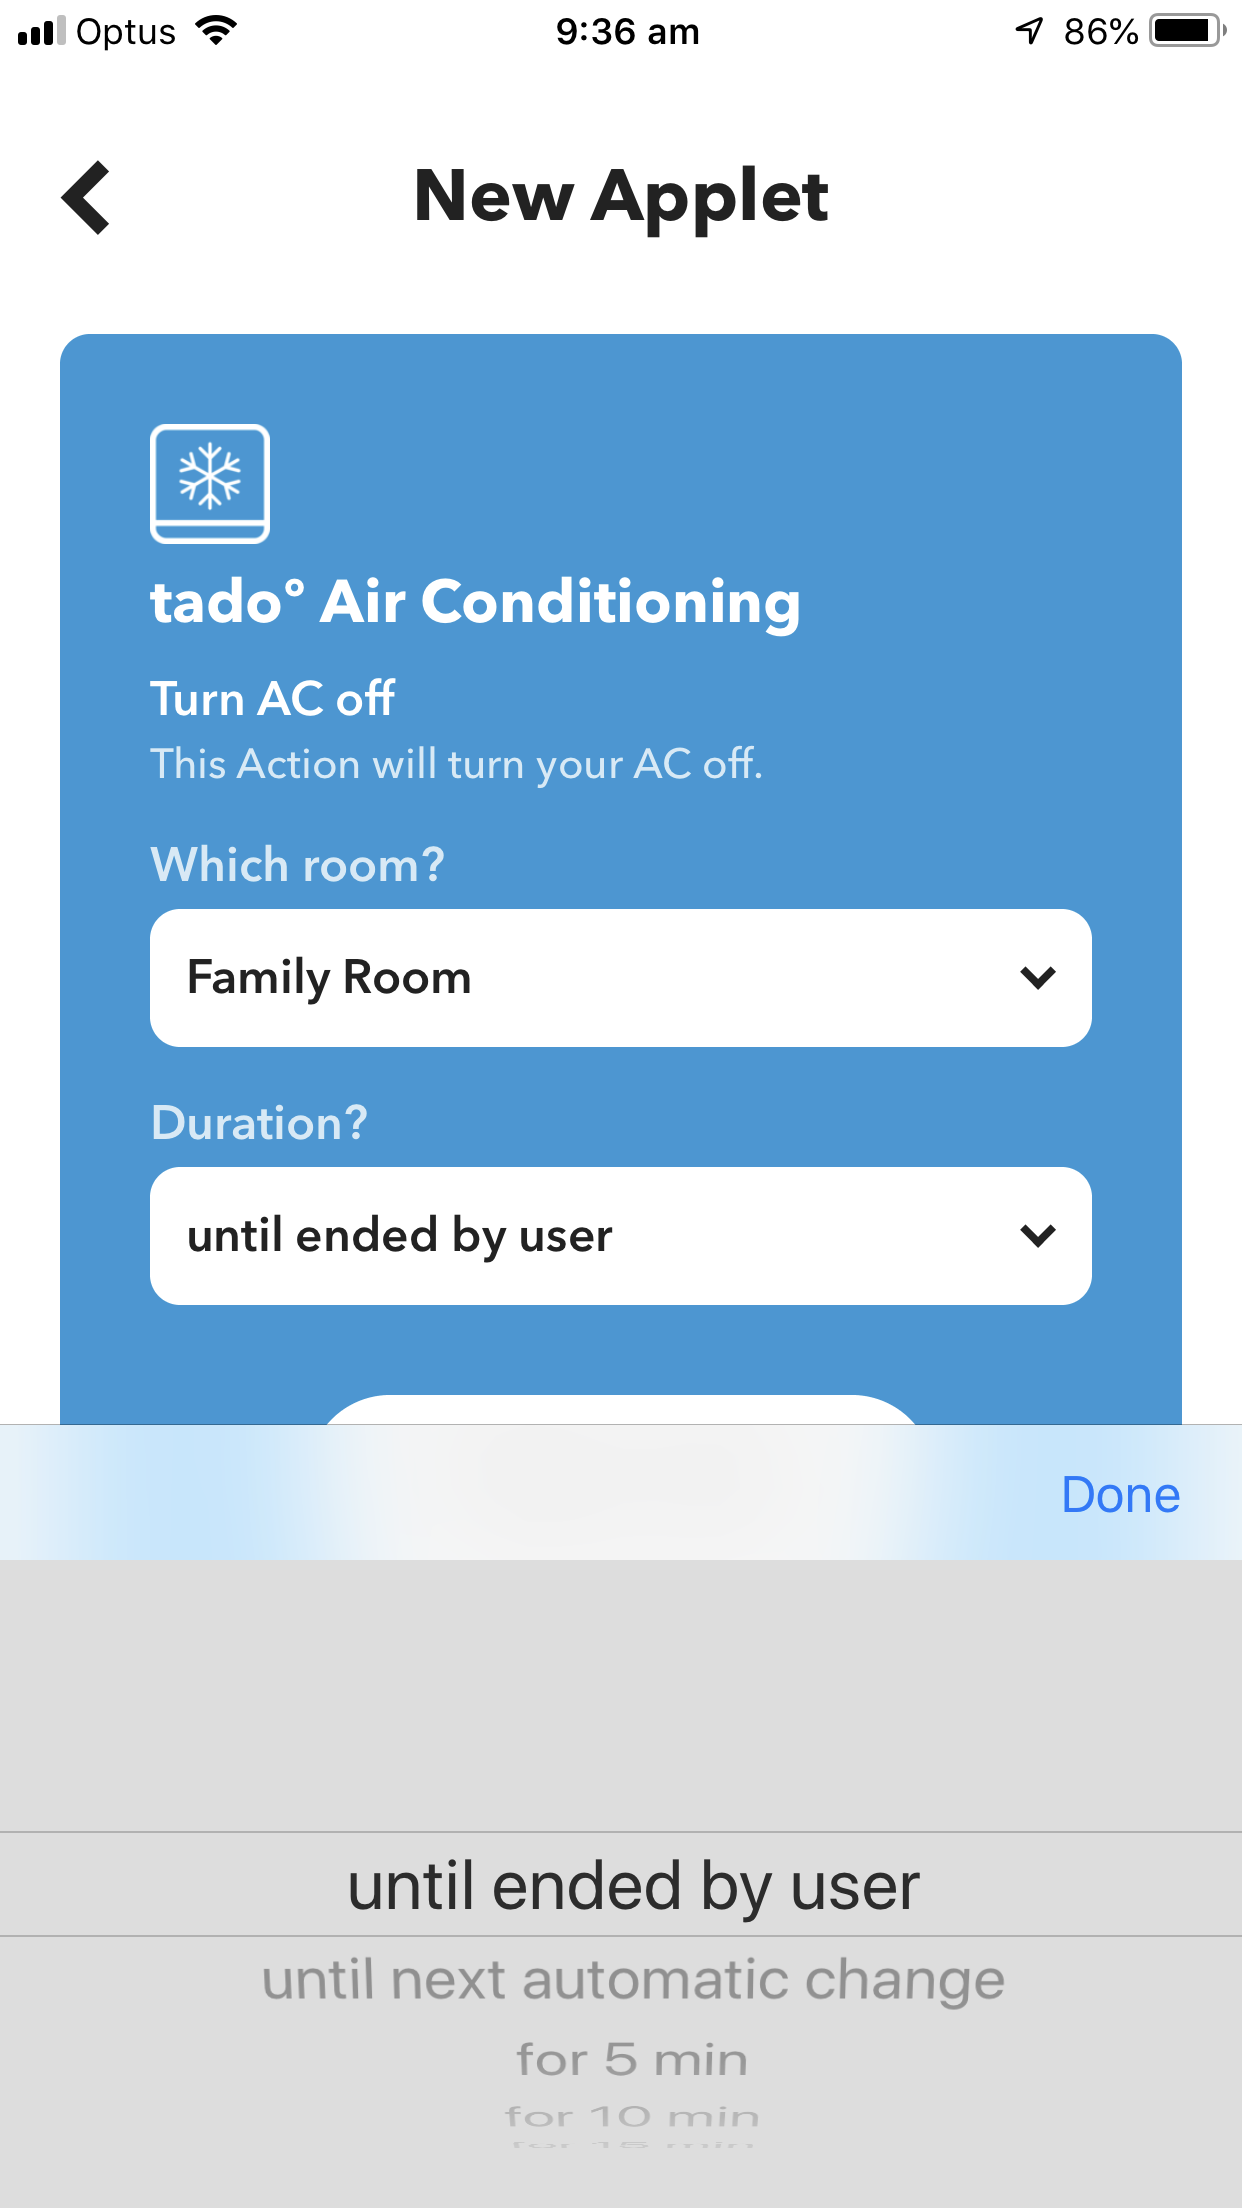 tado options